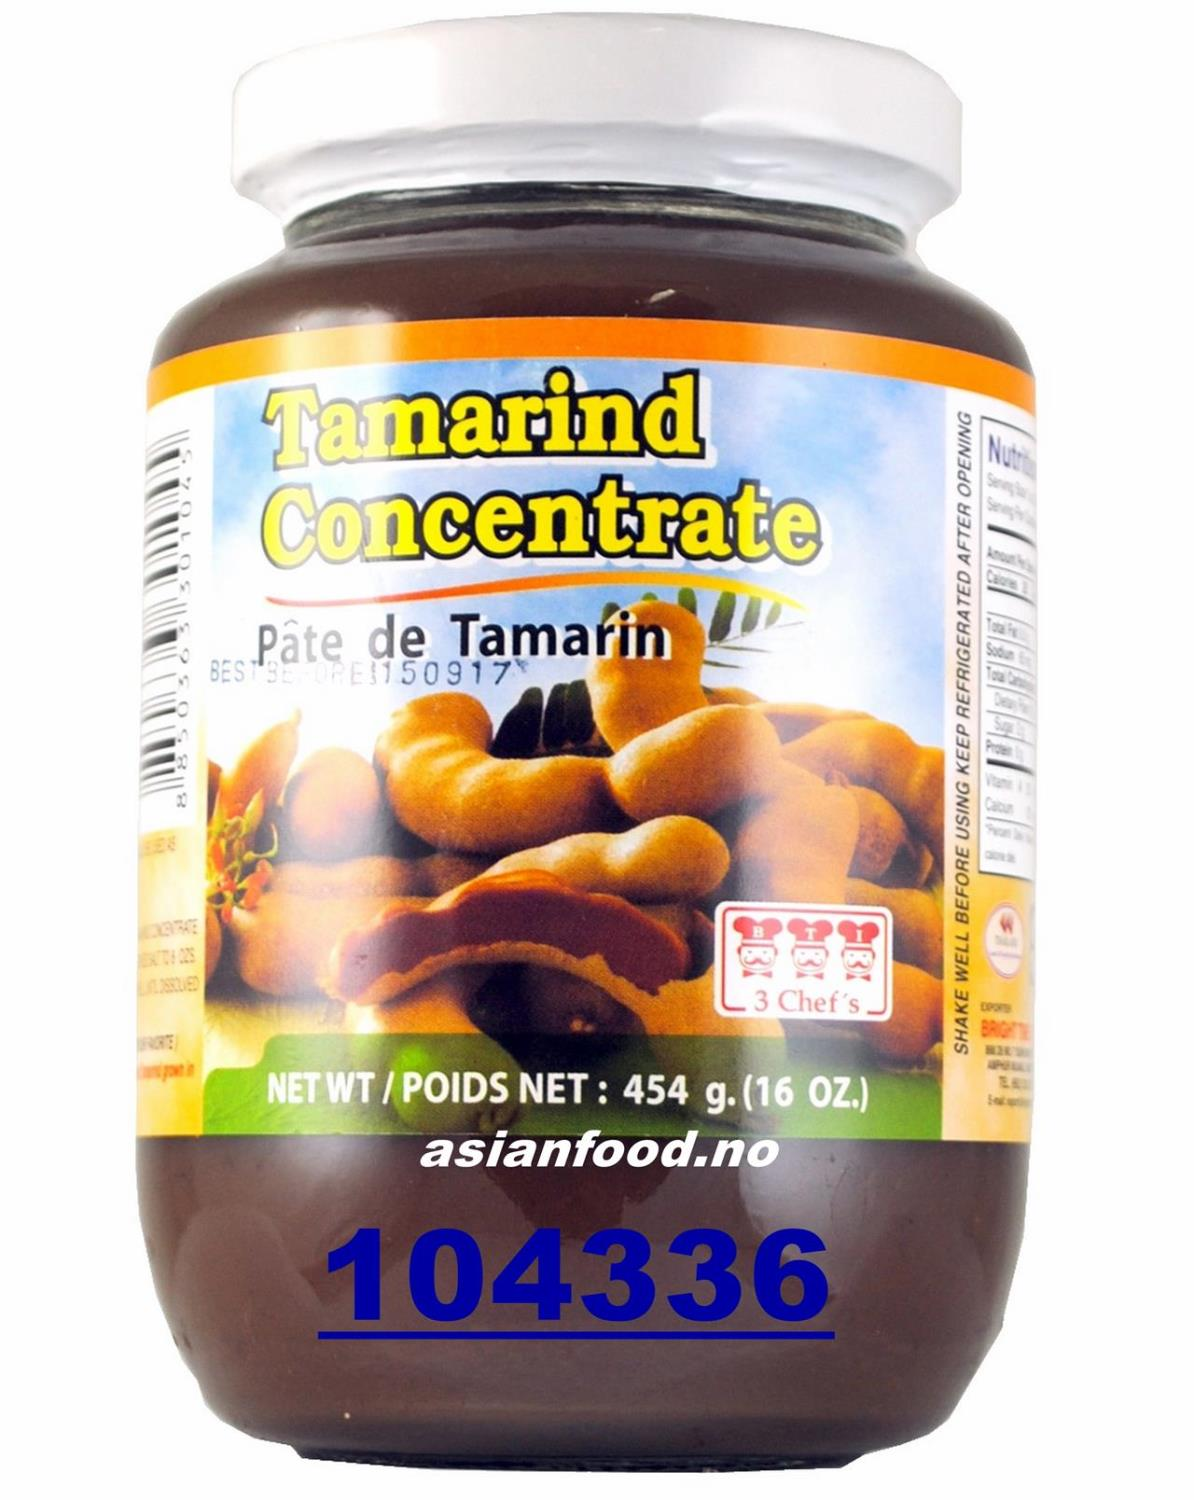 3 CHEFS Tamarind concentrate 454g